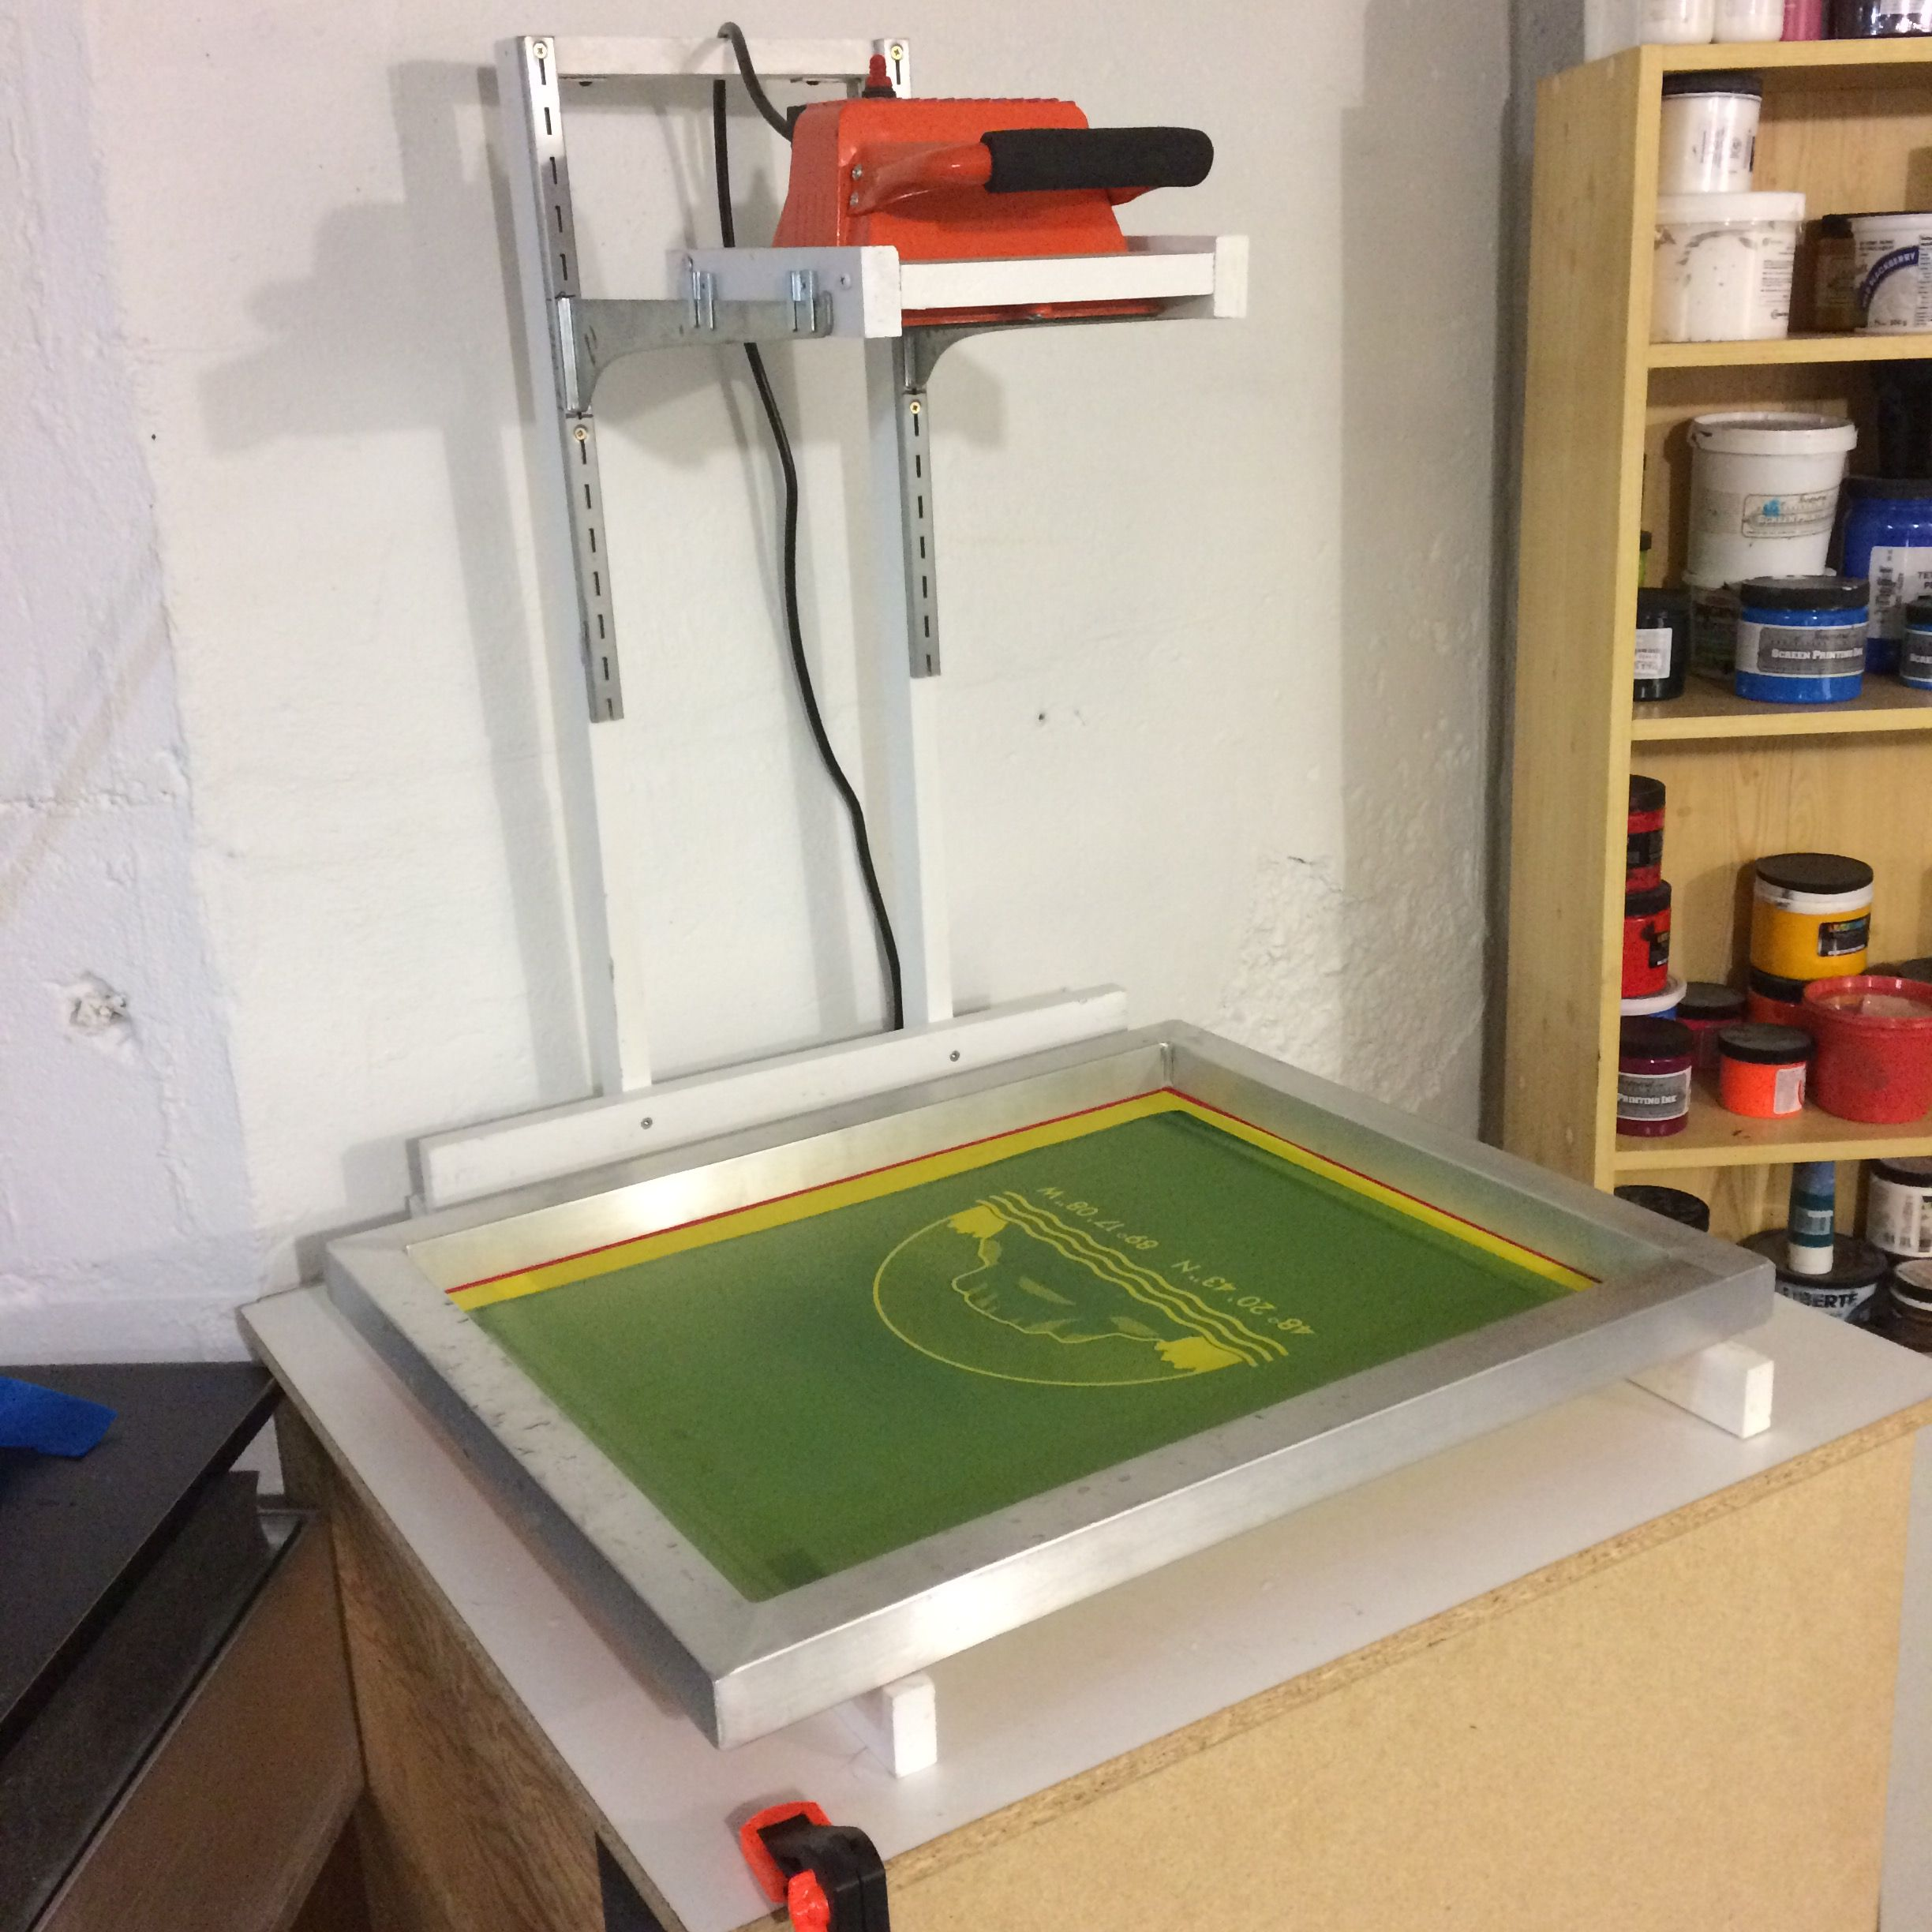 Diy Screen Printing Exposure Unit Imgur Diy Screen Printing Screen Printing Exposure Unit Silk Screen Printing Diy